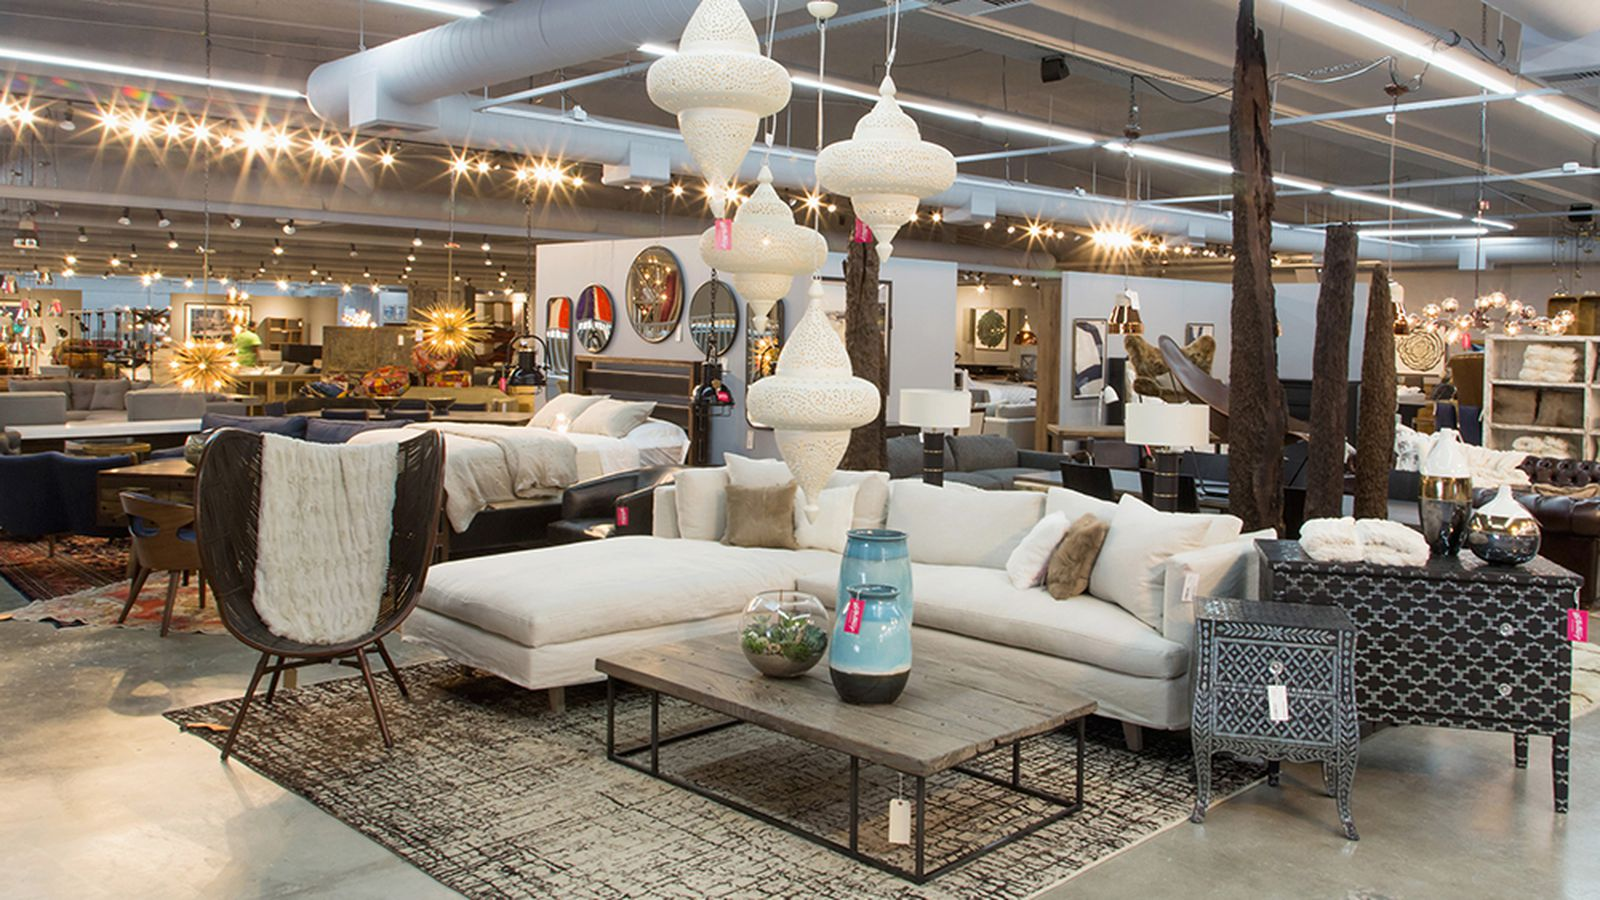 HD Buttercup39s Stylish Home Furnishings Are Coming to DTLA This